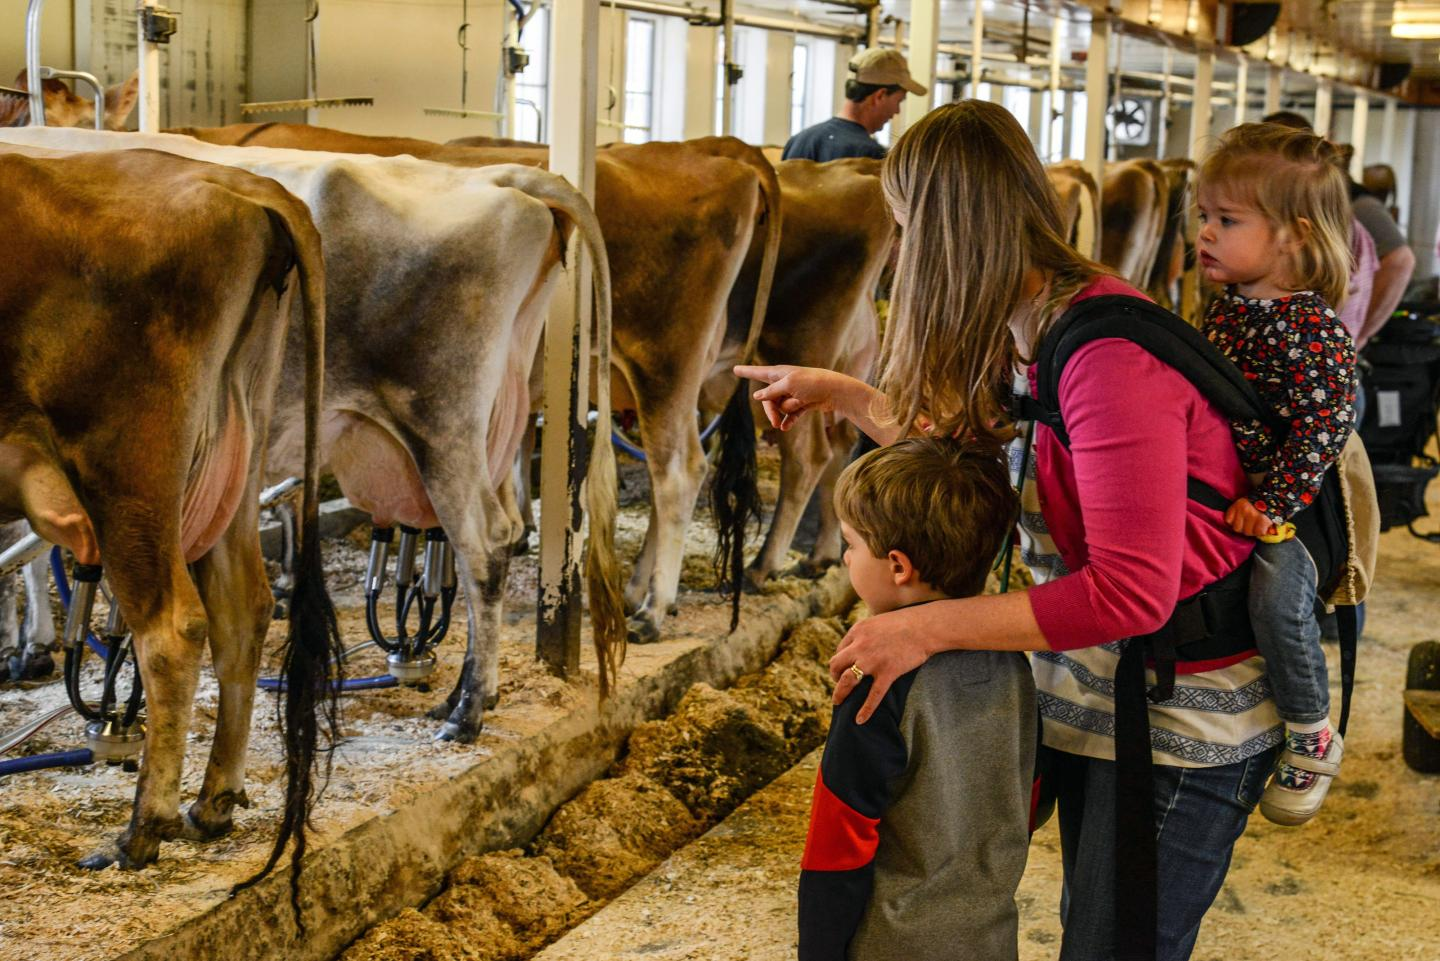 Billings Farm visitors milking